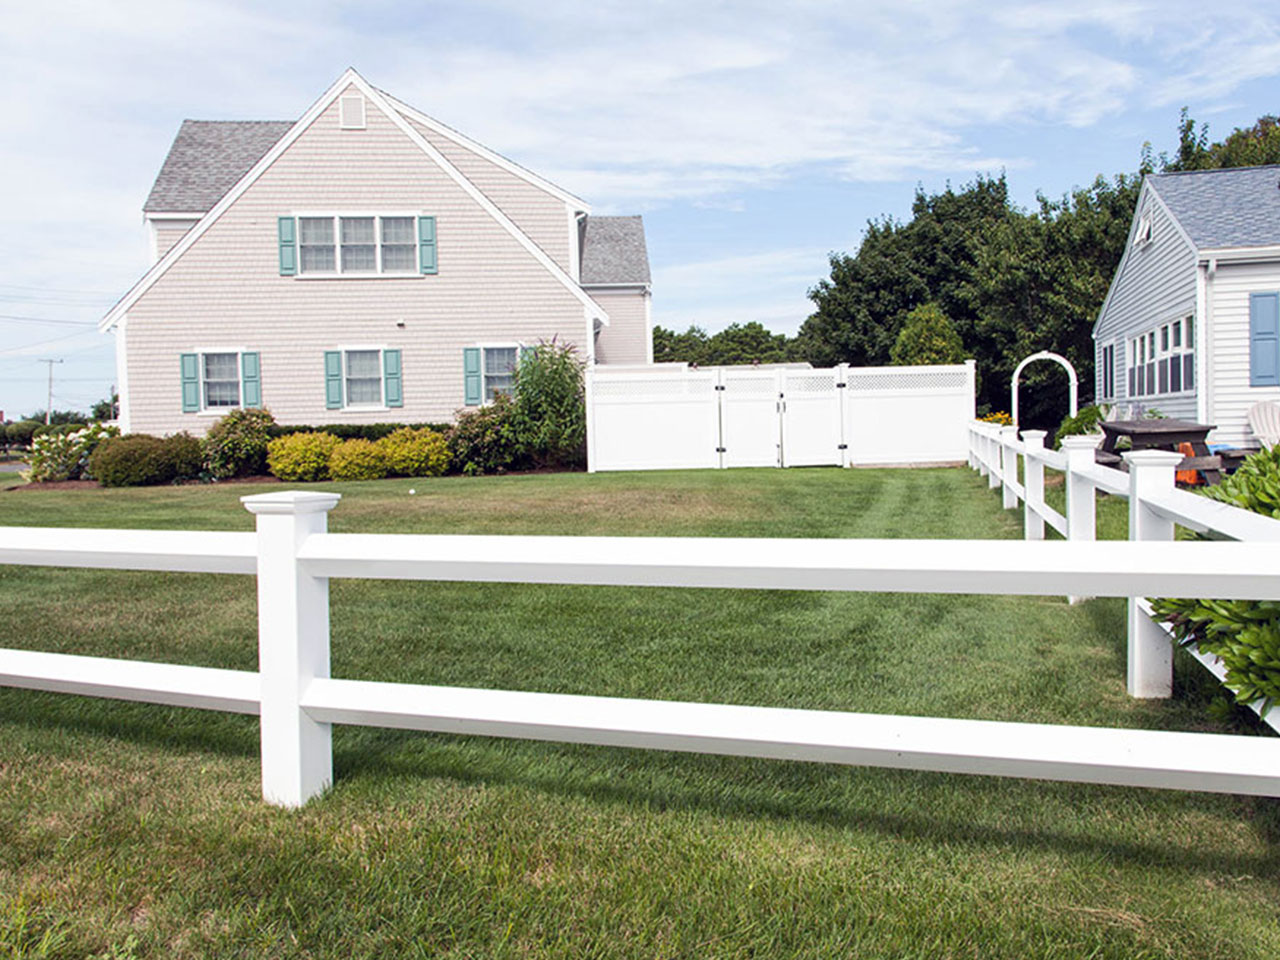 5 Quot X 5 Quot Post With 4 Quot X 4 Quot Rail Cape Cod Fence Company